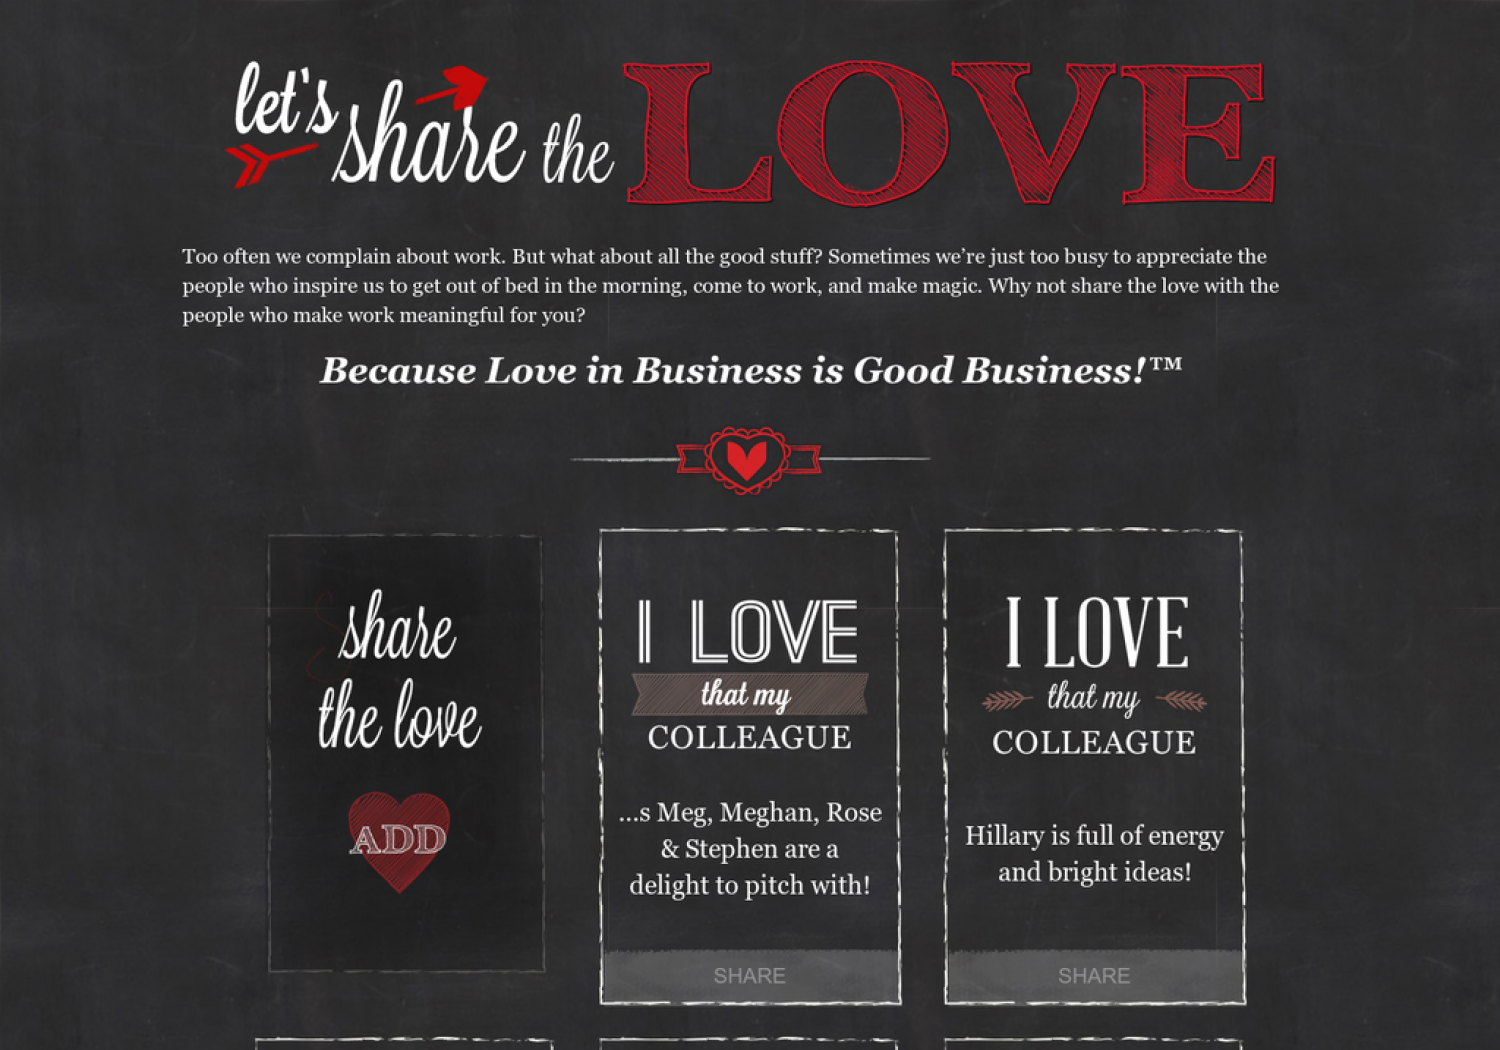 Let's Share the Love Infographic